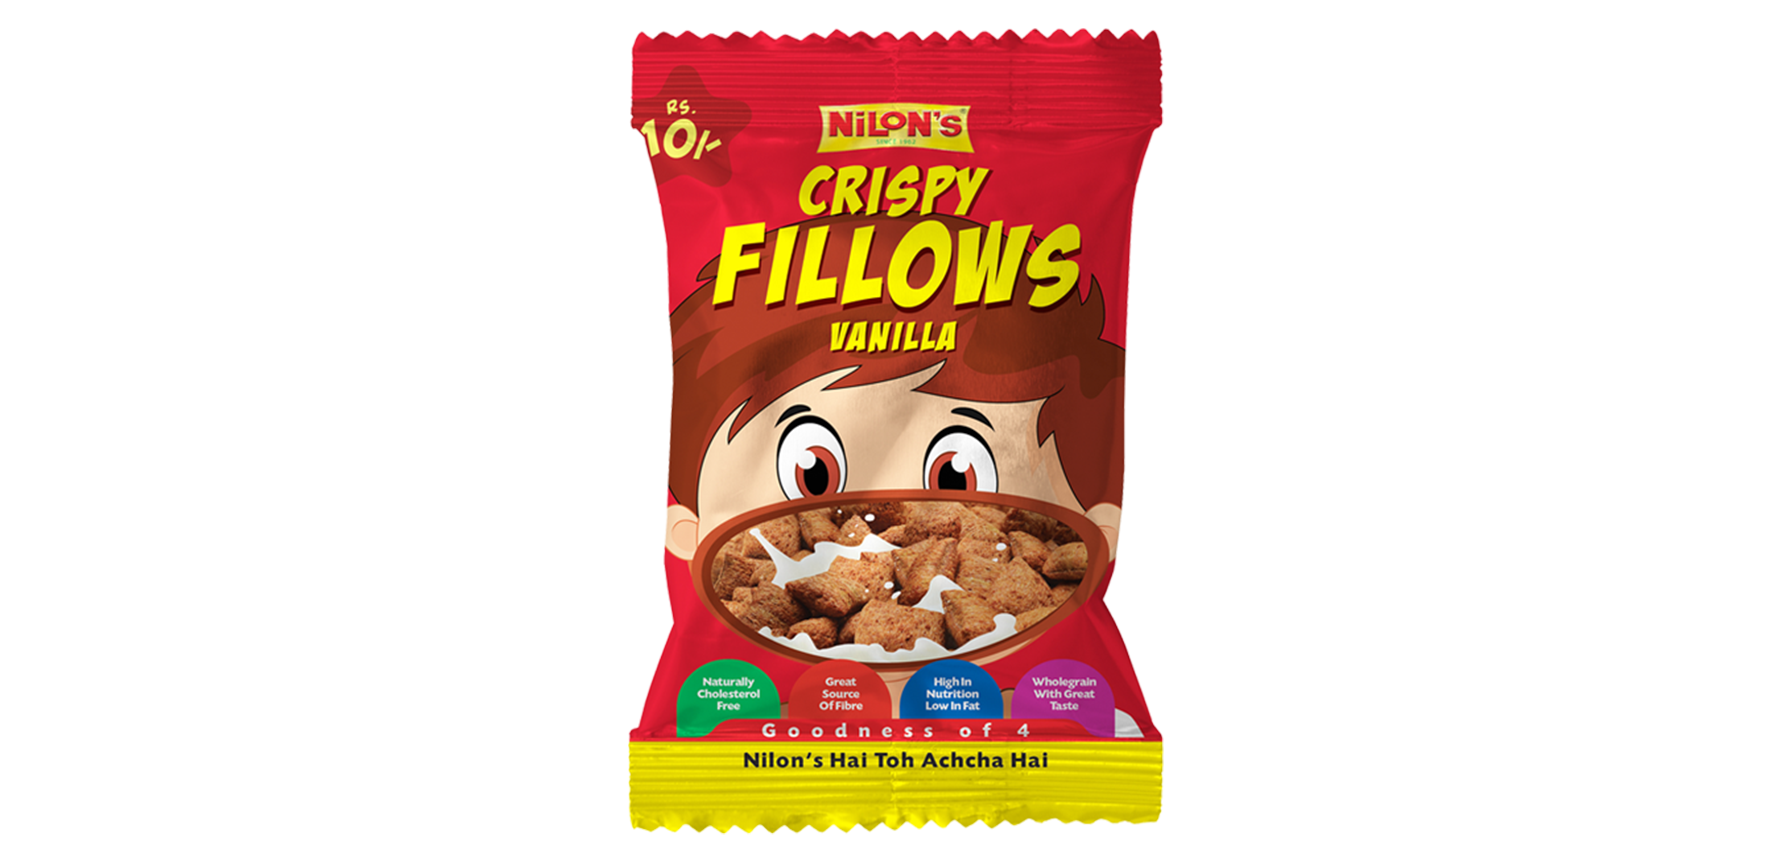 Crispy Fillows Vanilla